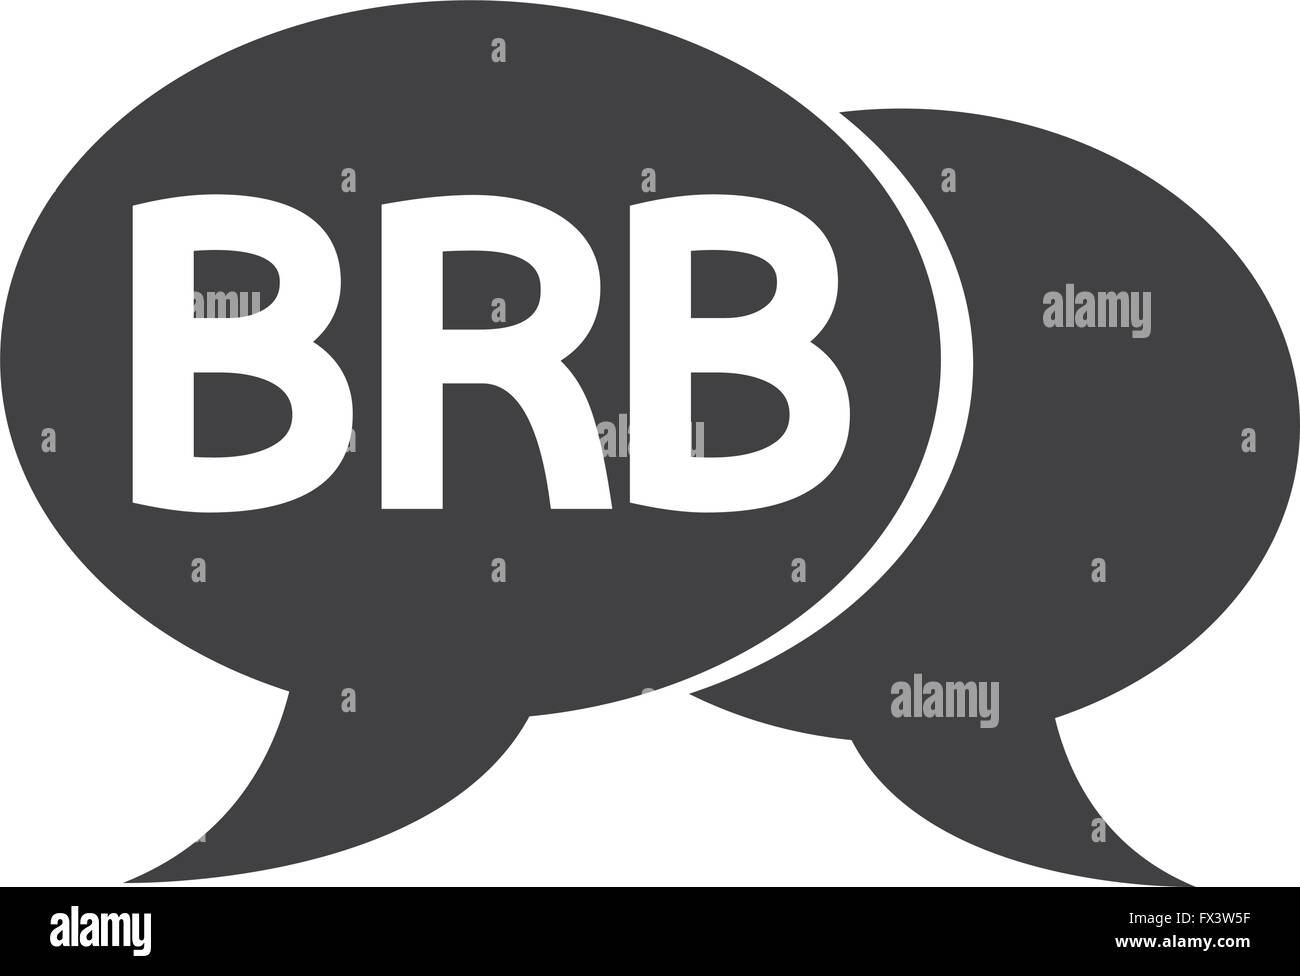 internet acronym chat bubble illustration - Stock Vector